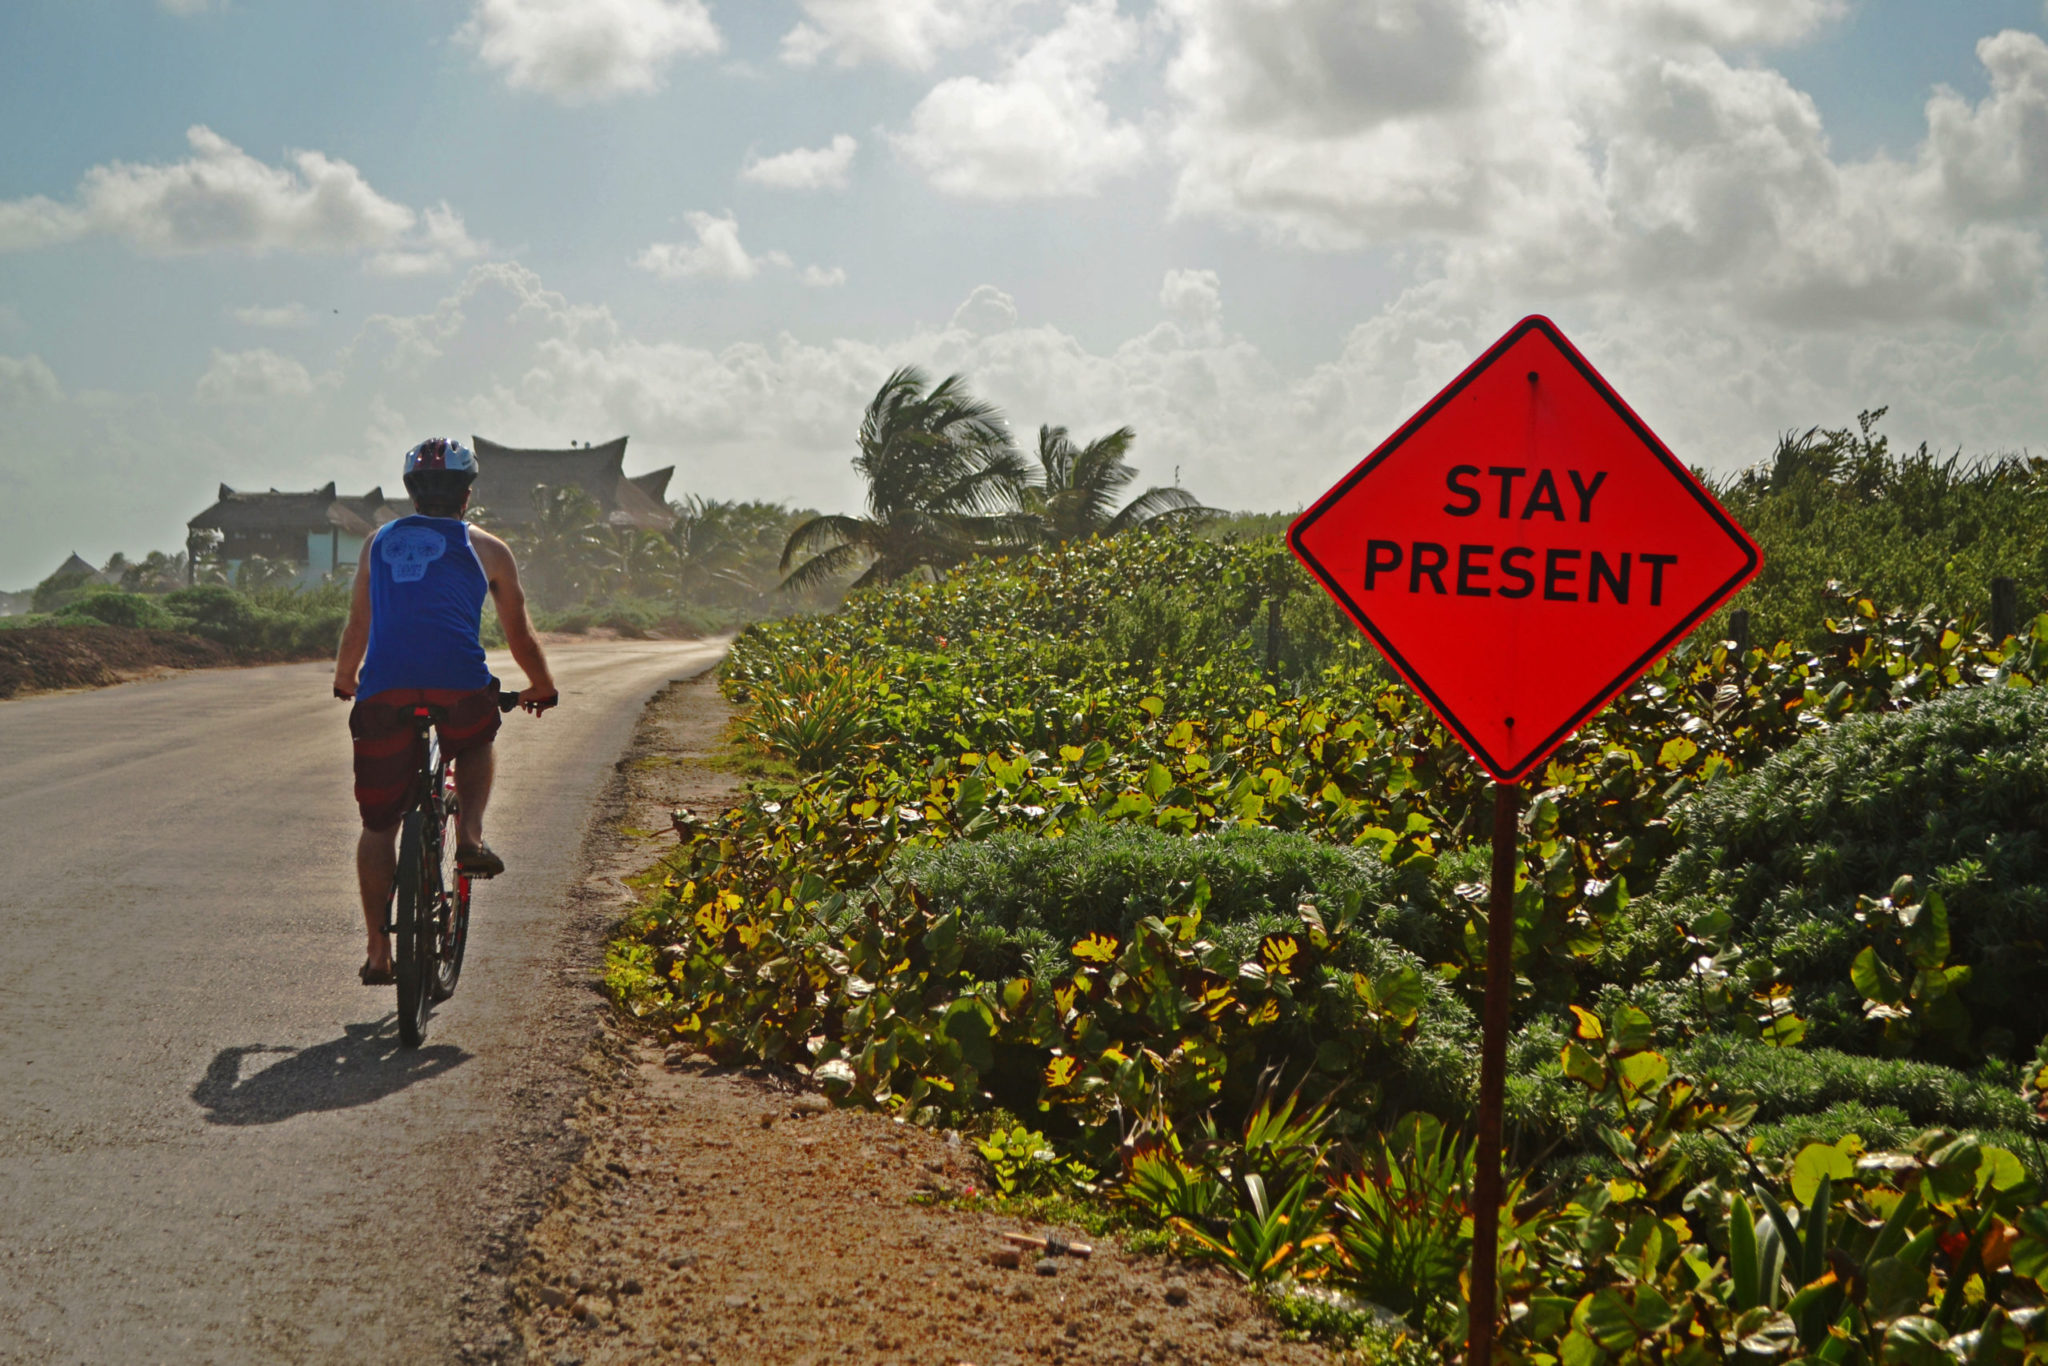 Tulum Bike Tour – Discover Tulum Like a Local on this Mexico Biking trip